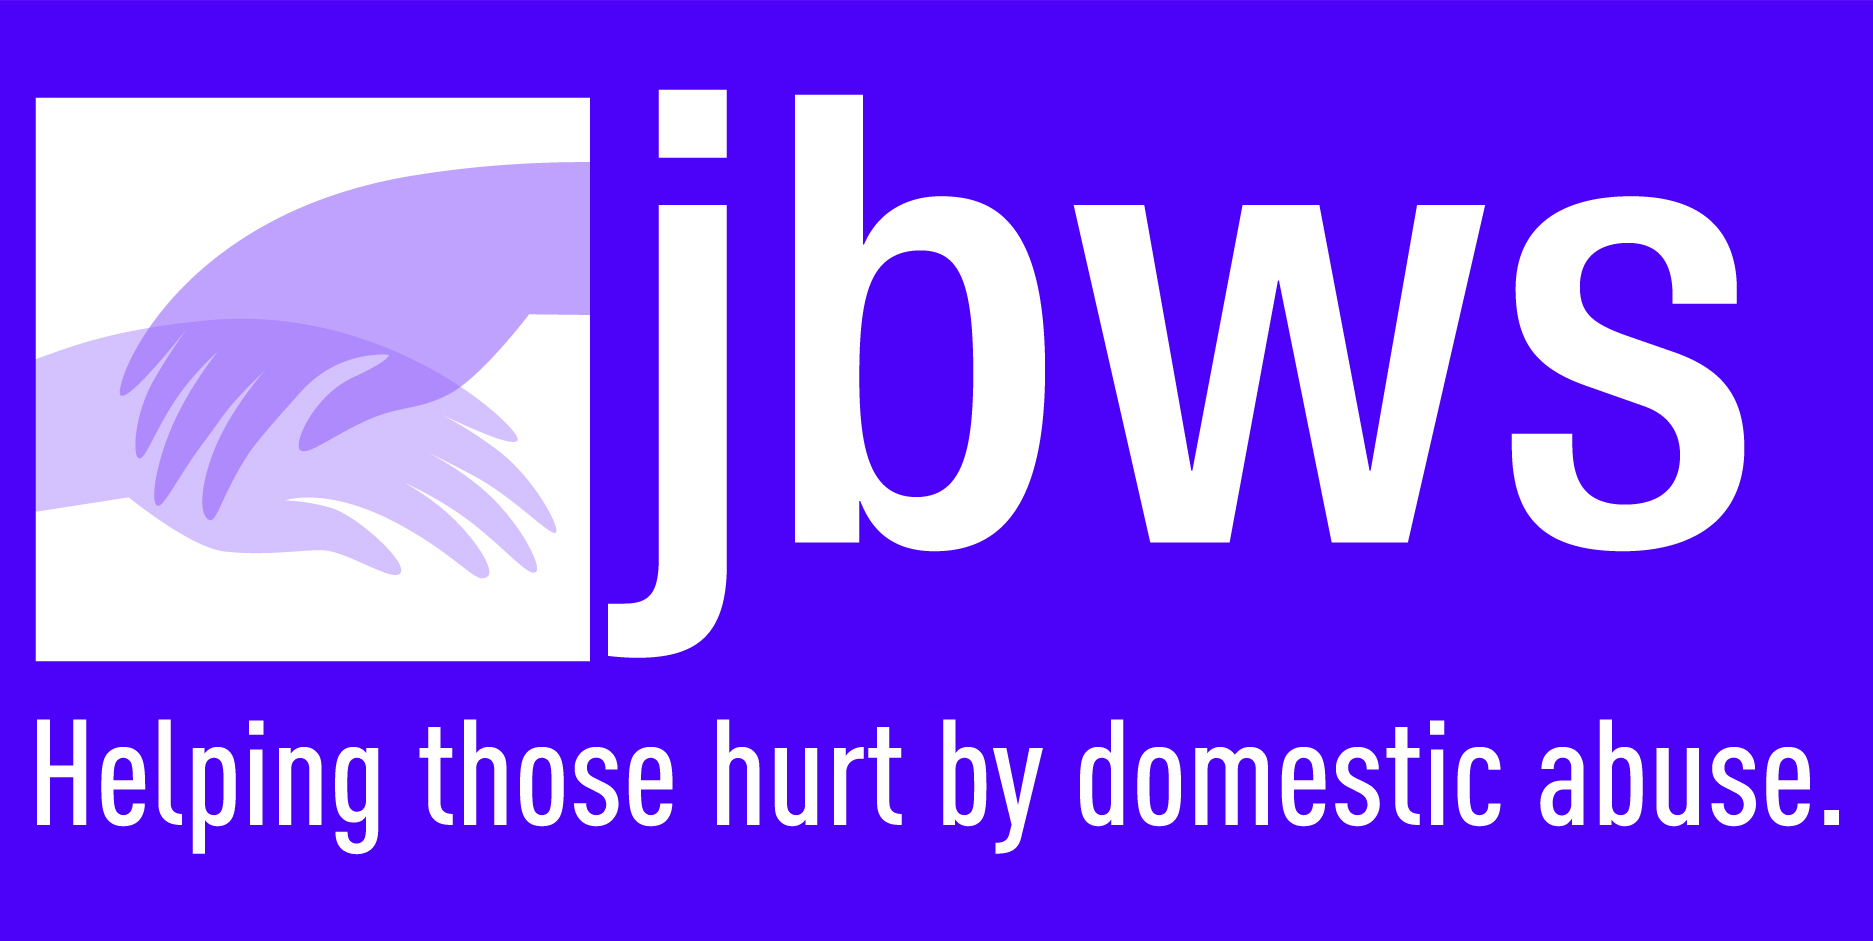 JBWS Hands LOGO without agency name